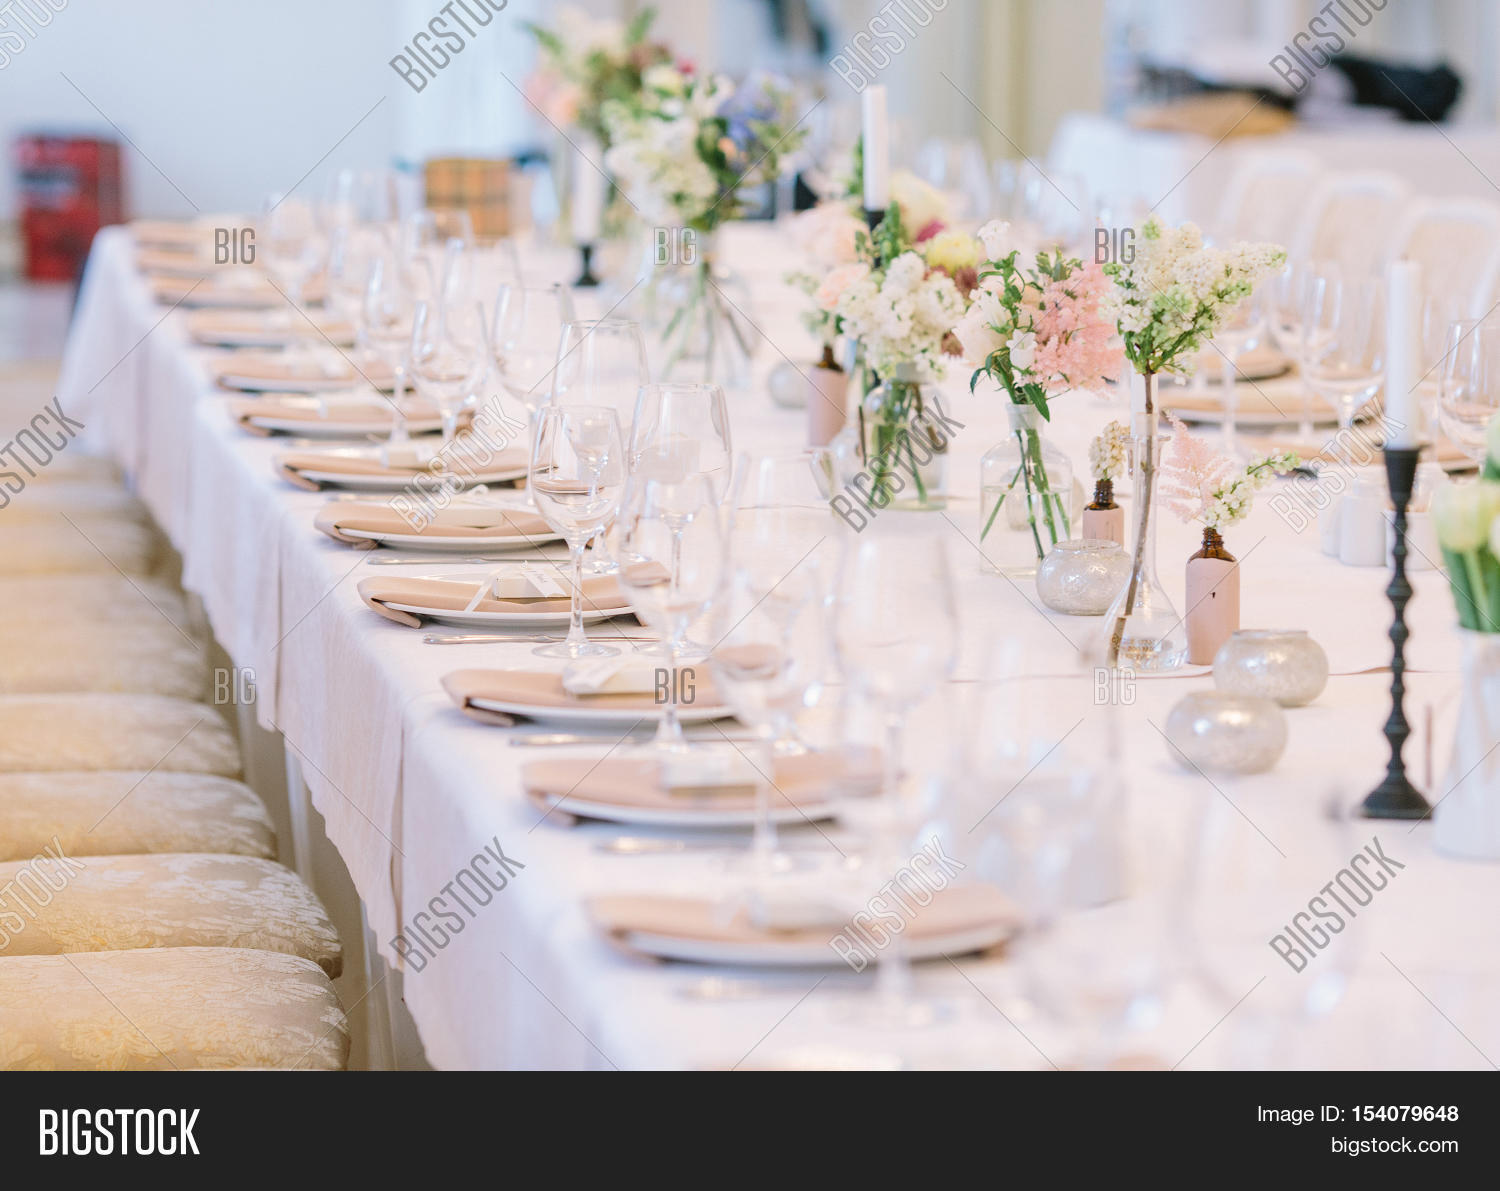 Wedding decor interior image photo bigstock